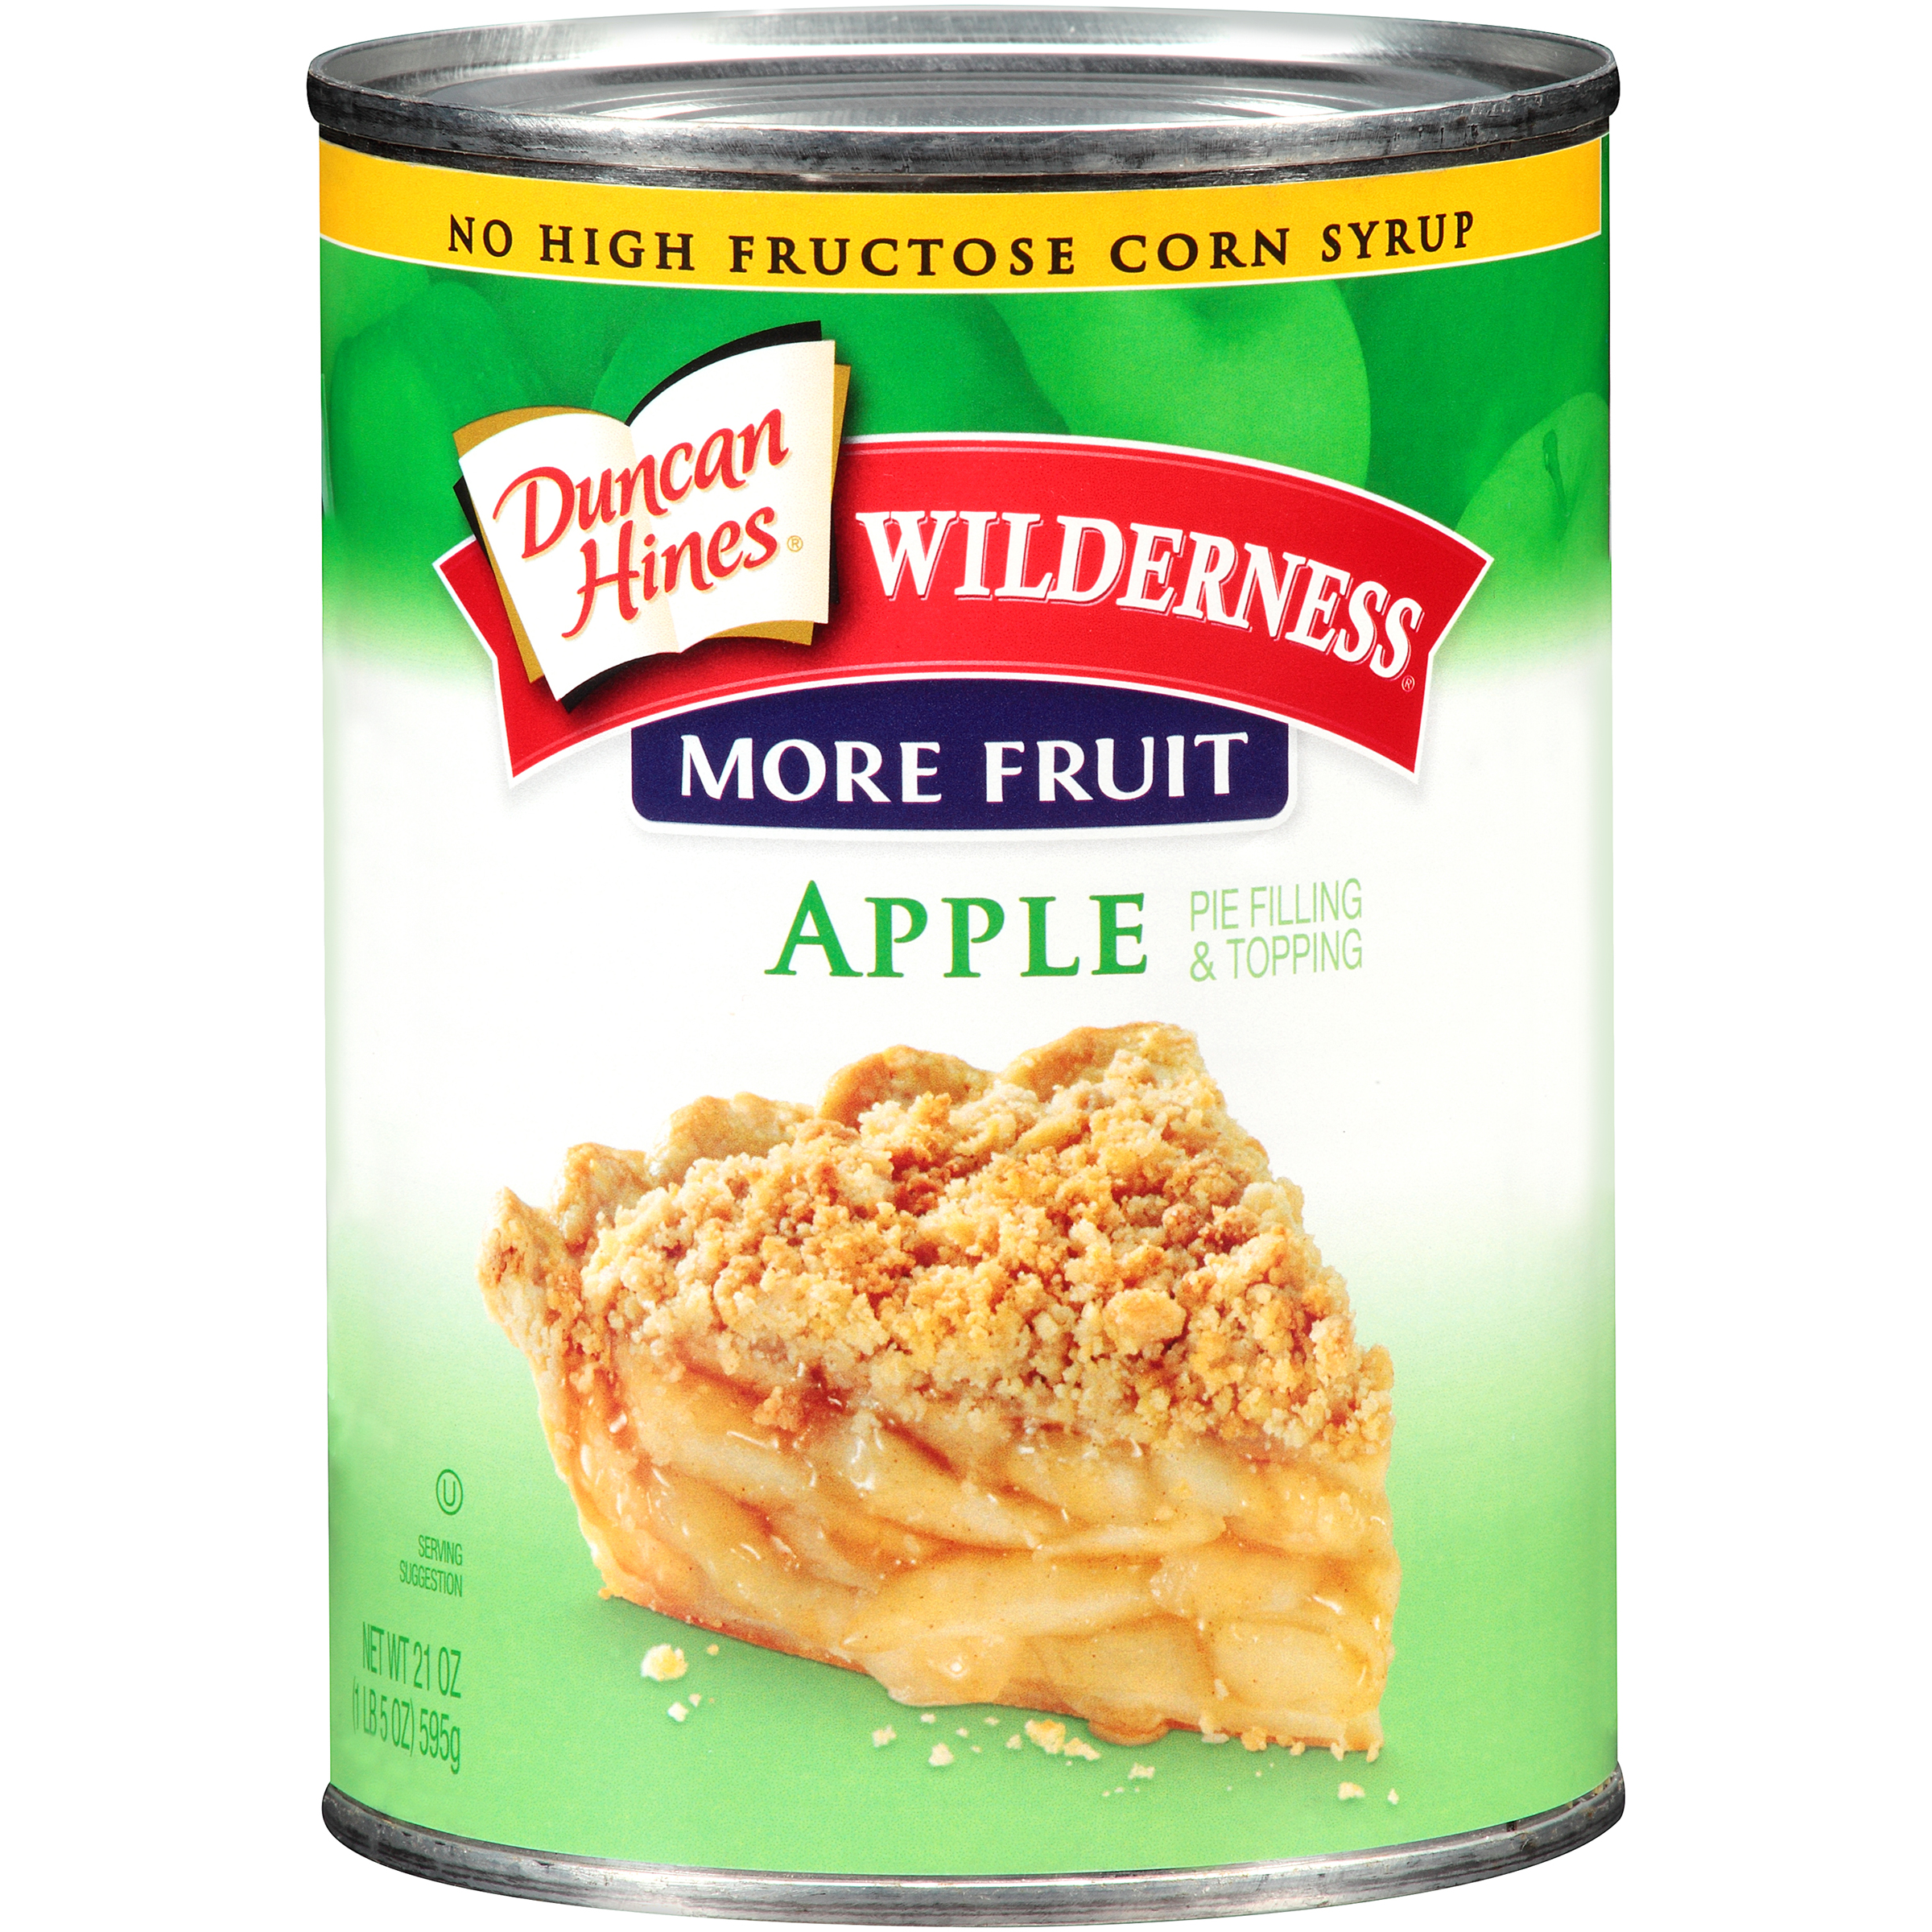 Duncan Hines��Wilderness�� More Fruit Apple Pie Filling & Topping 21 oz. Can